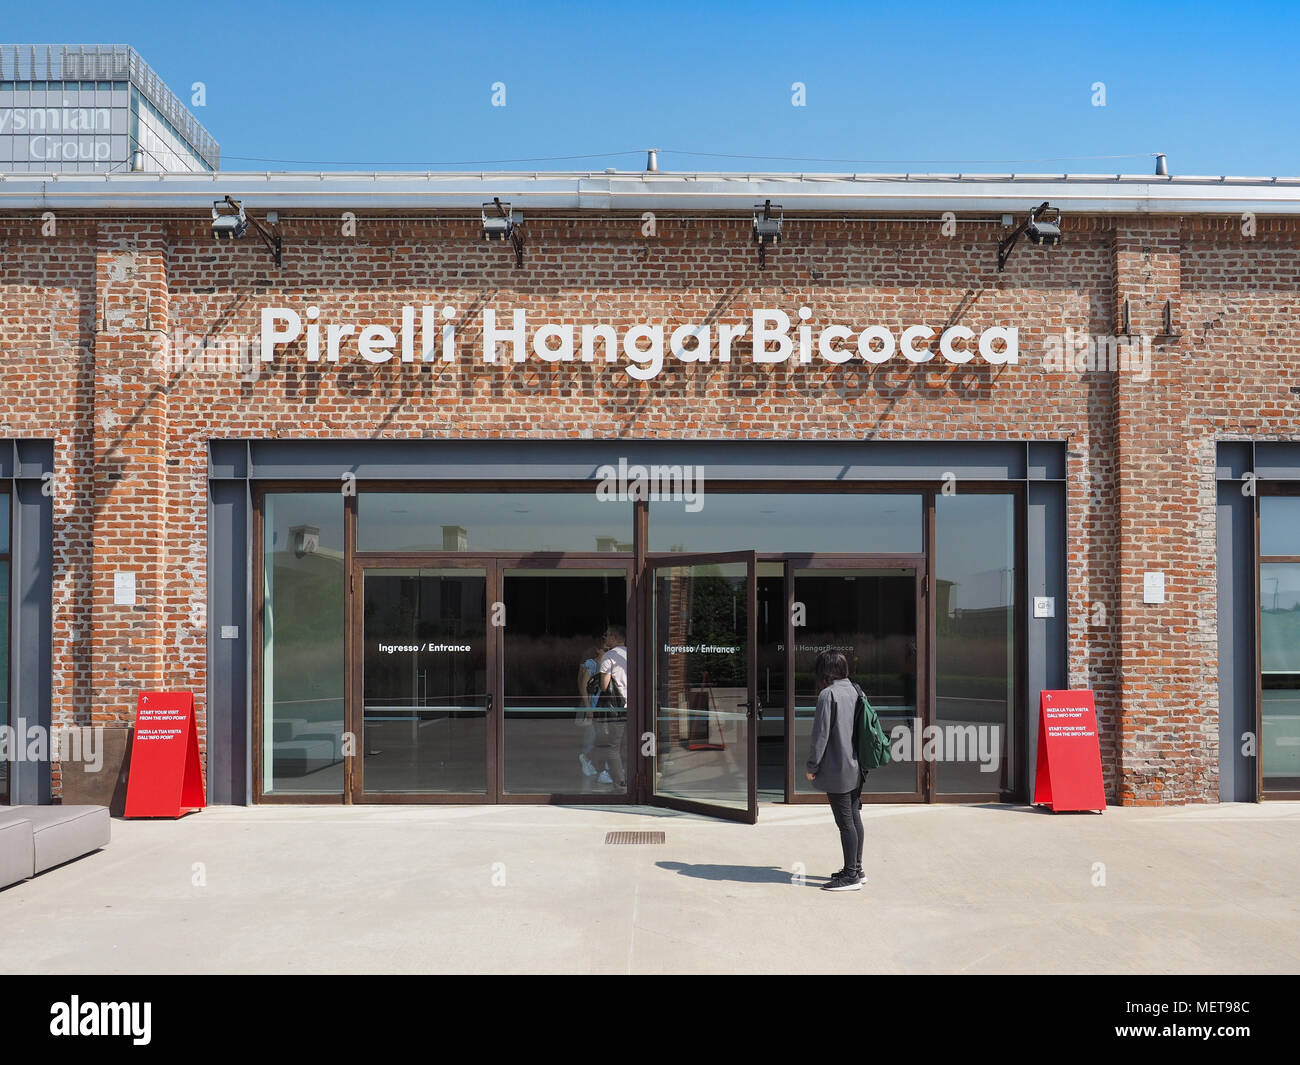 Bicocca Milan Stock Photos & Bicocca Milan Stock Images - Alamy